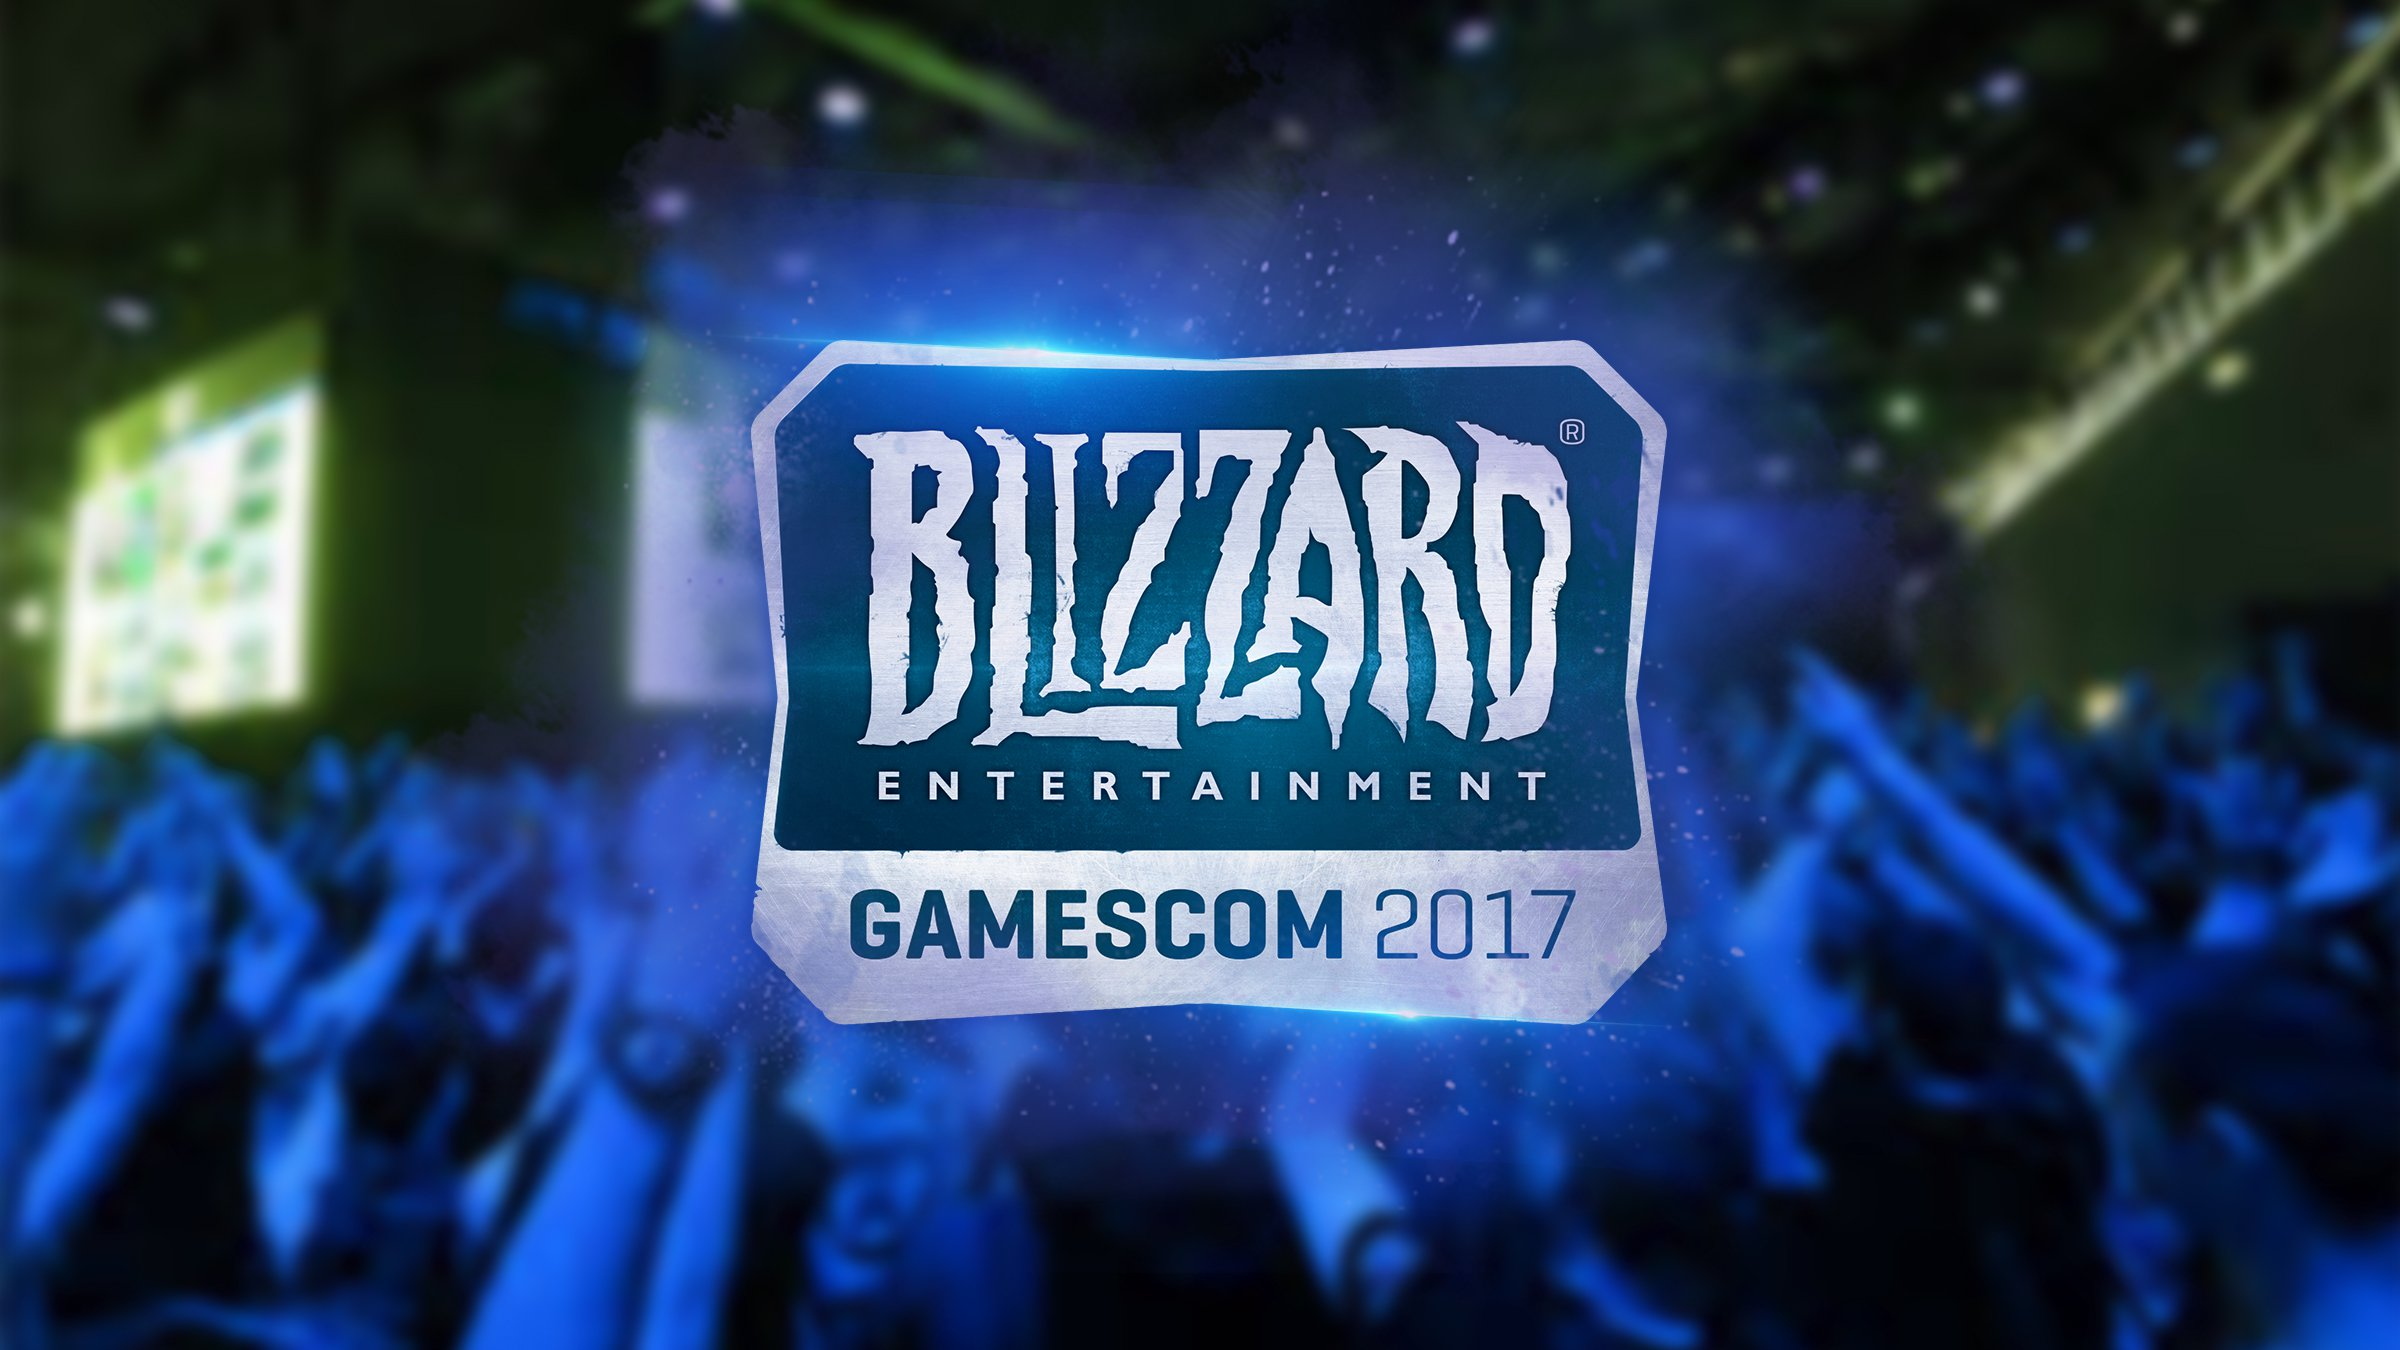 #Gamescom | End of the conference, Blizzard